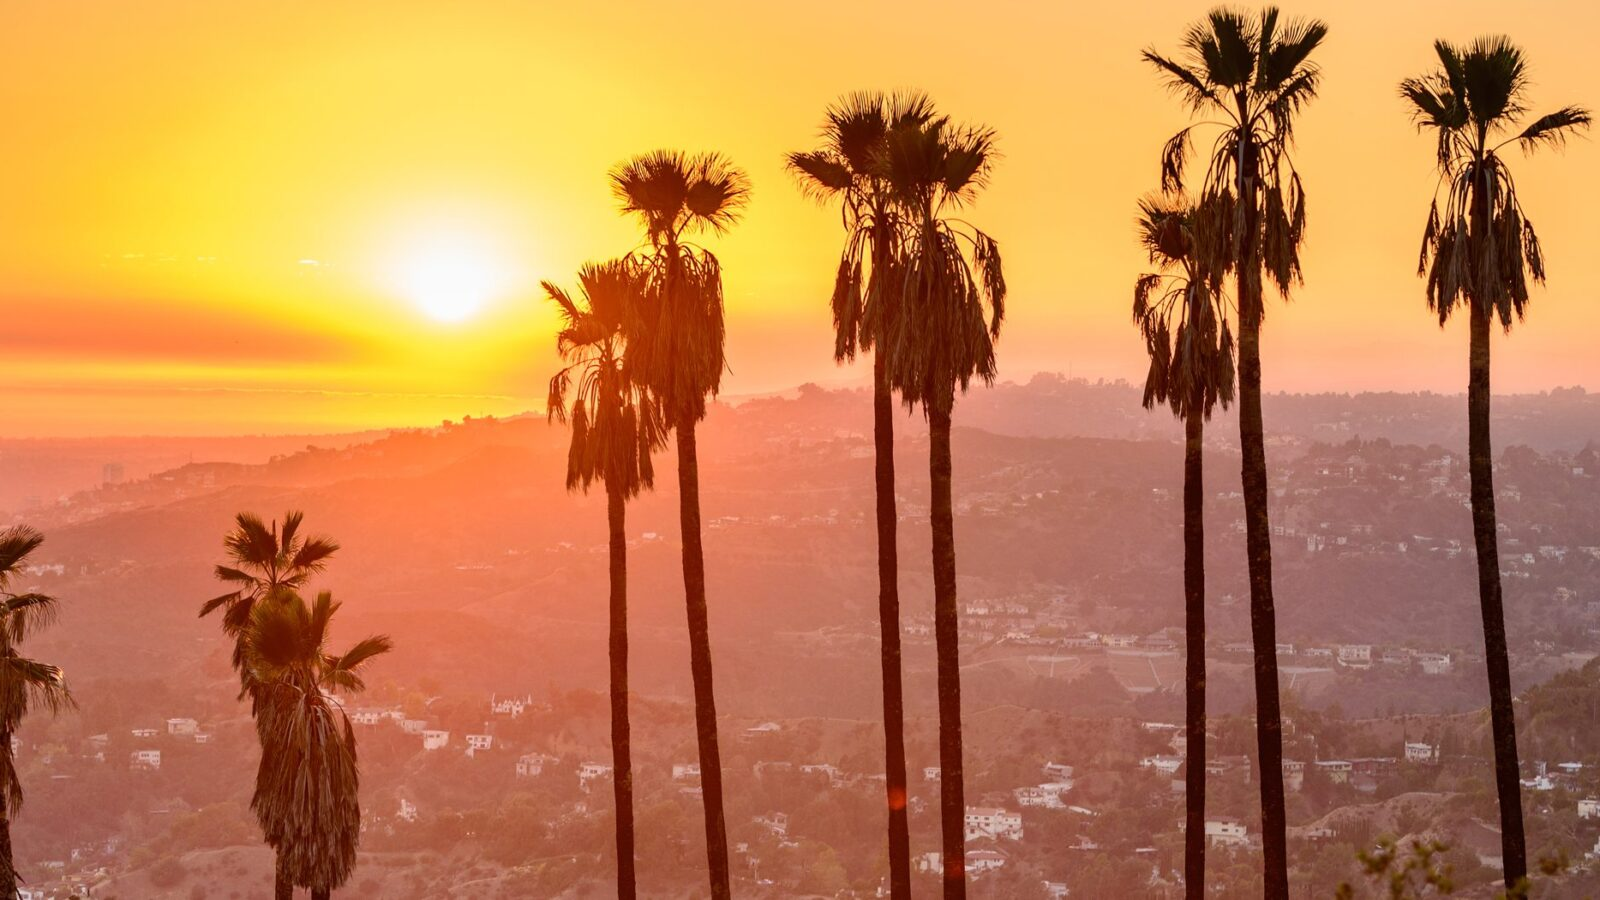 View of the Los Angeles skyline